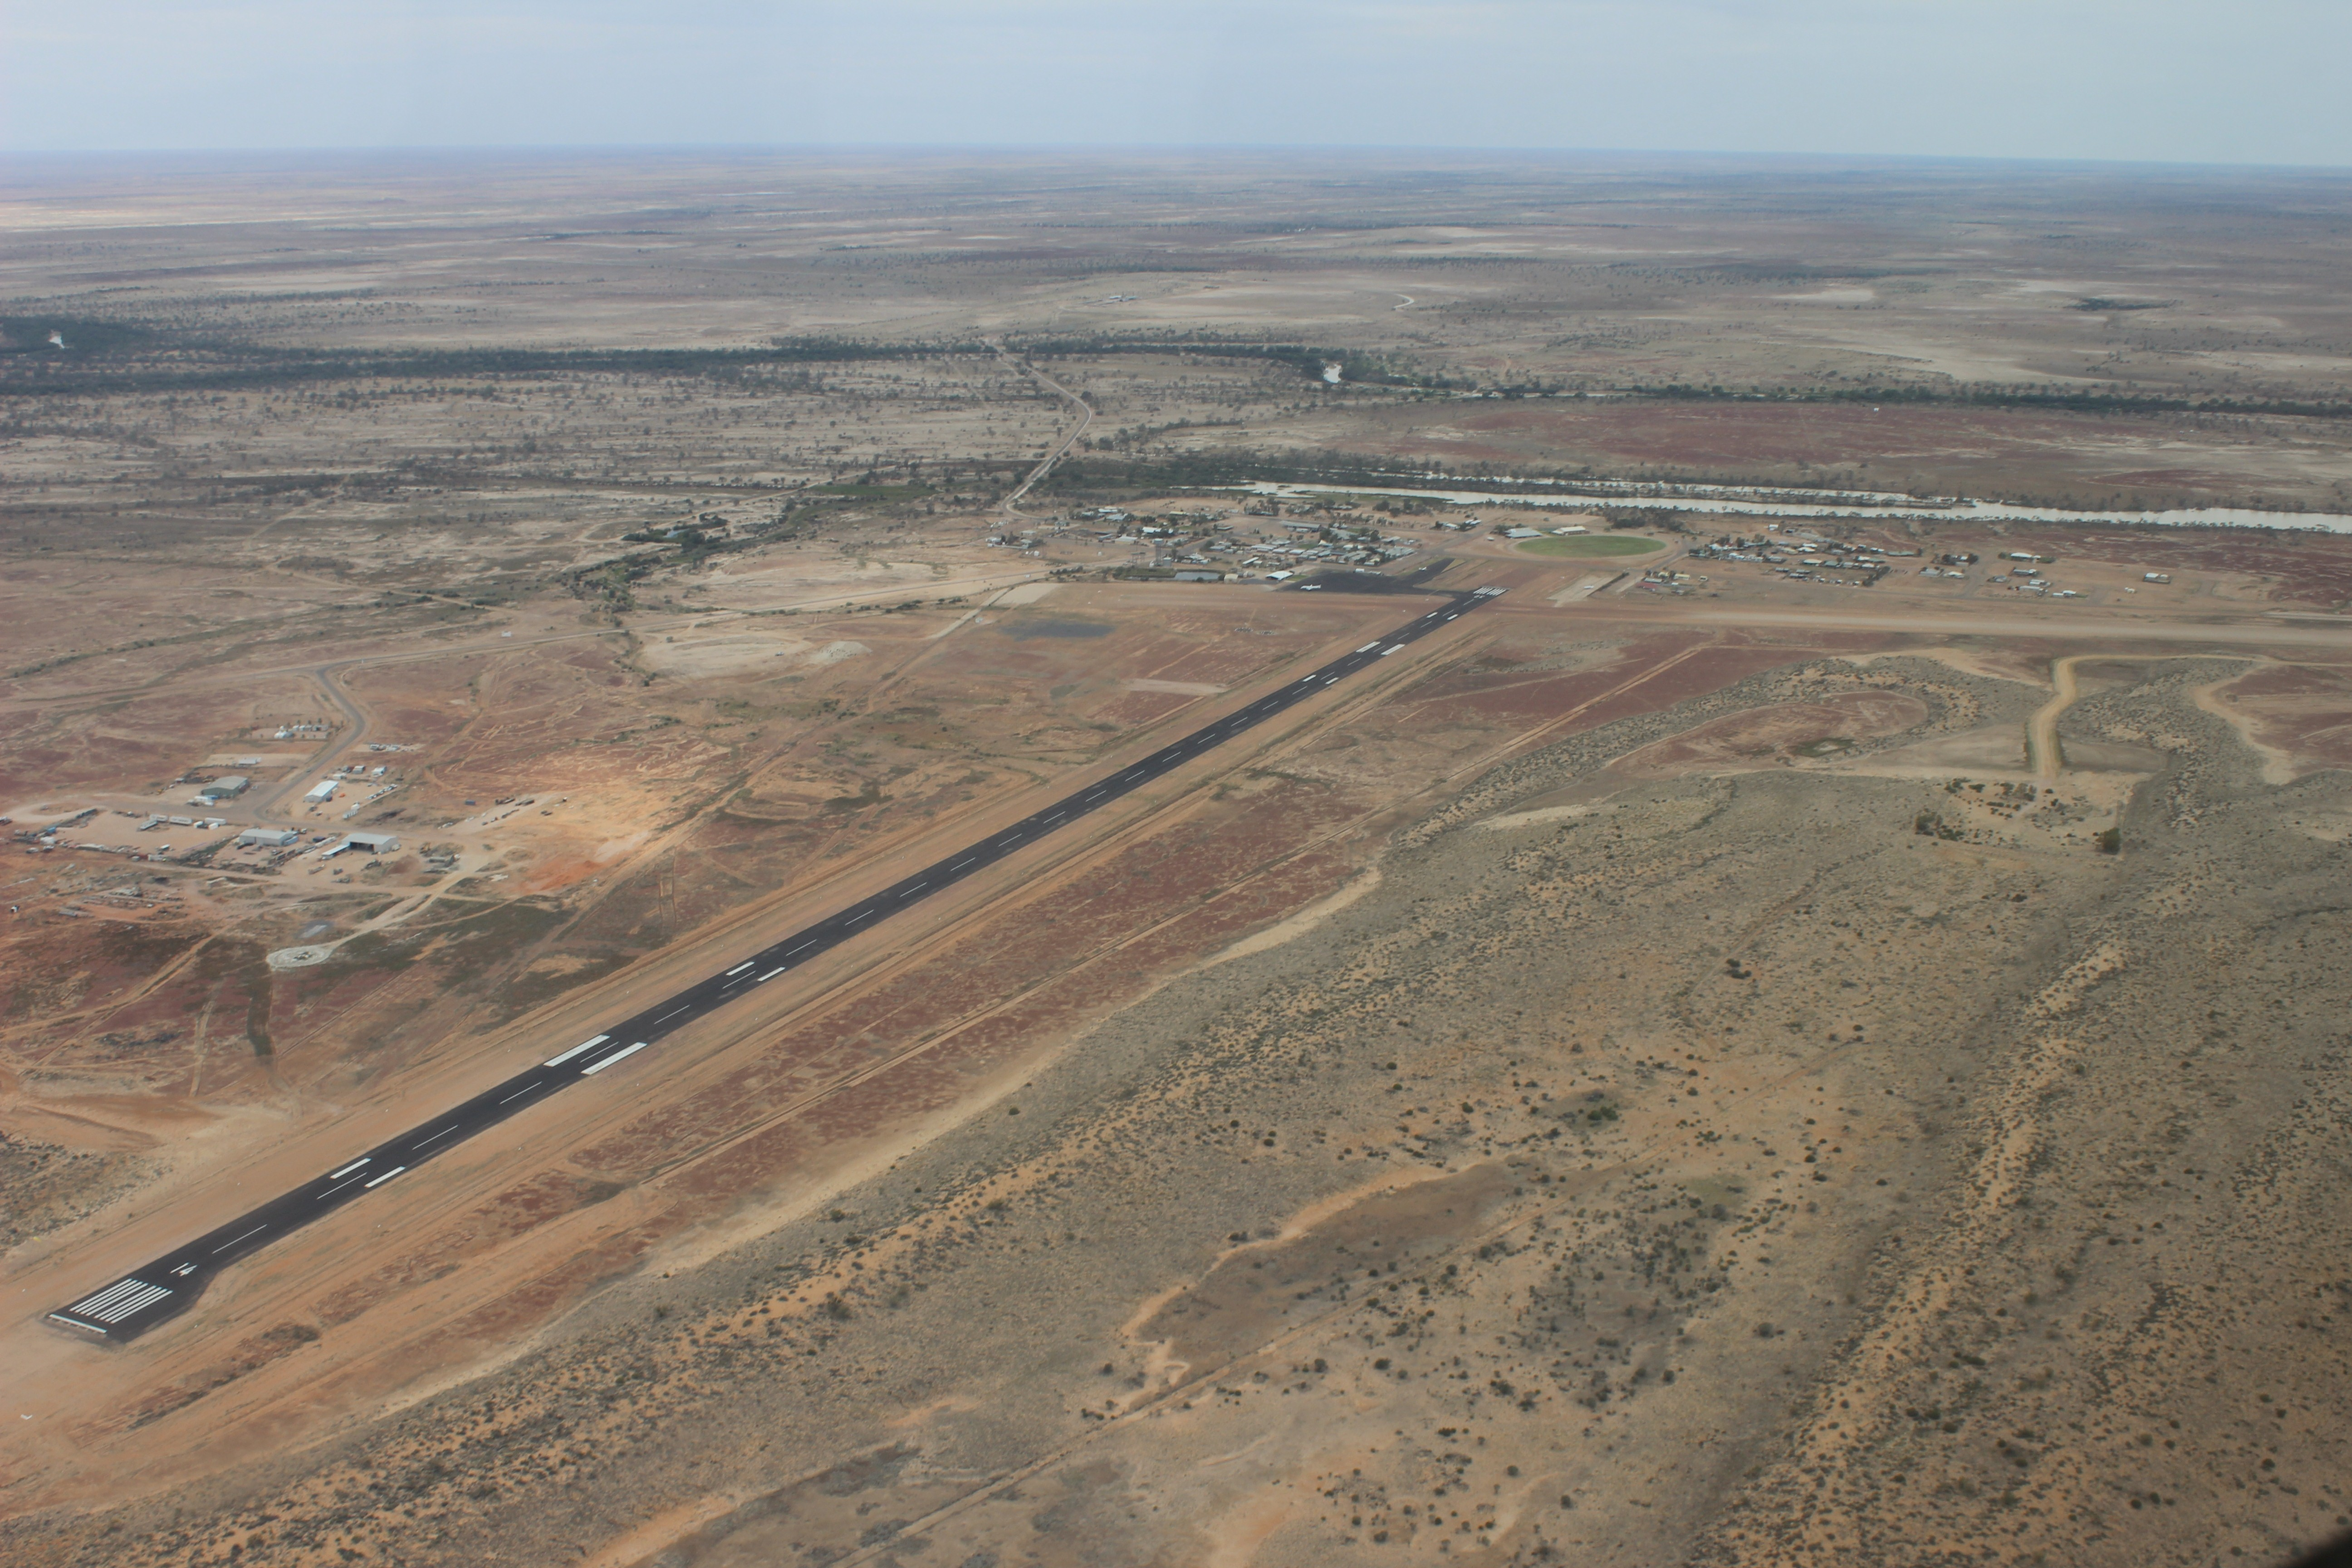 aerial view of Birdsville including runway